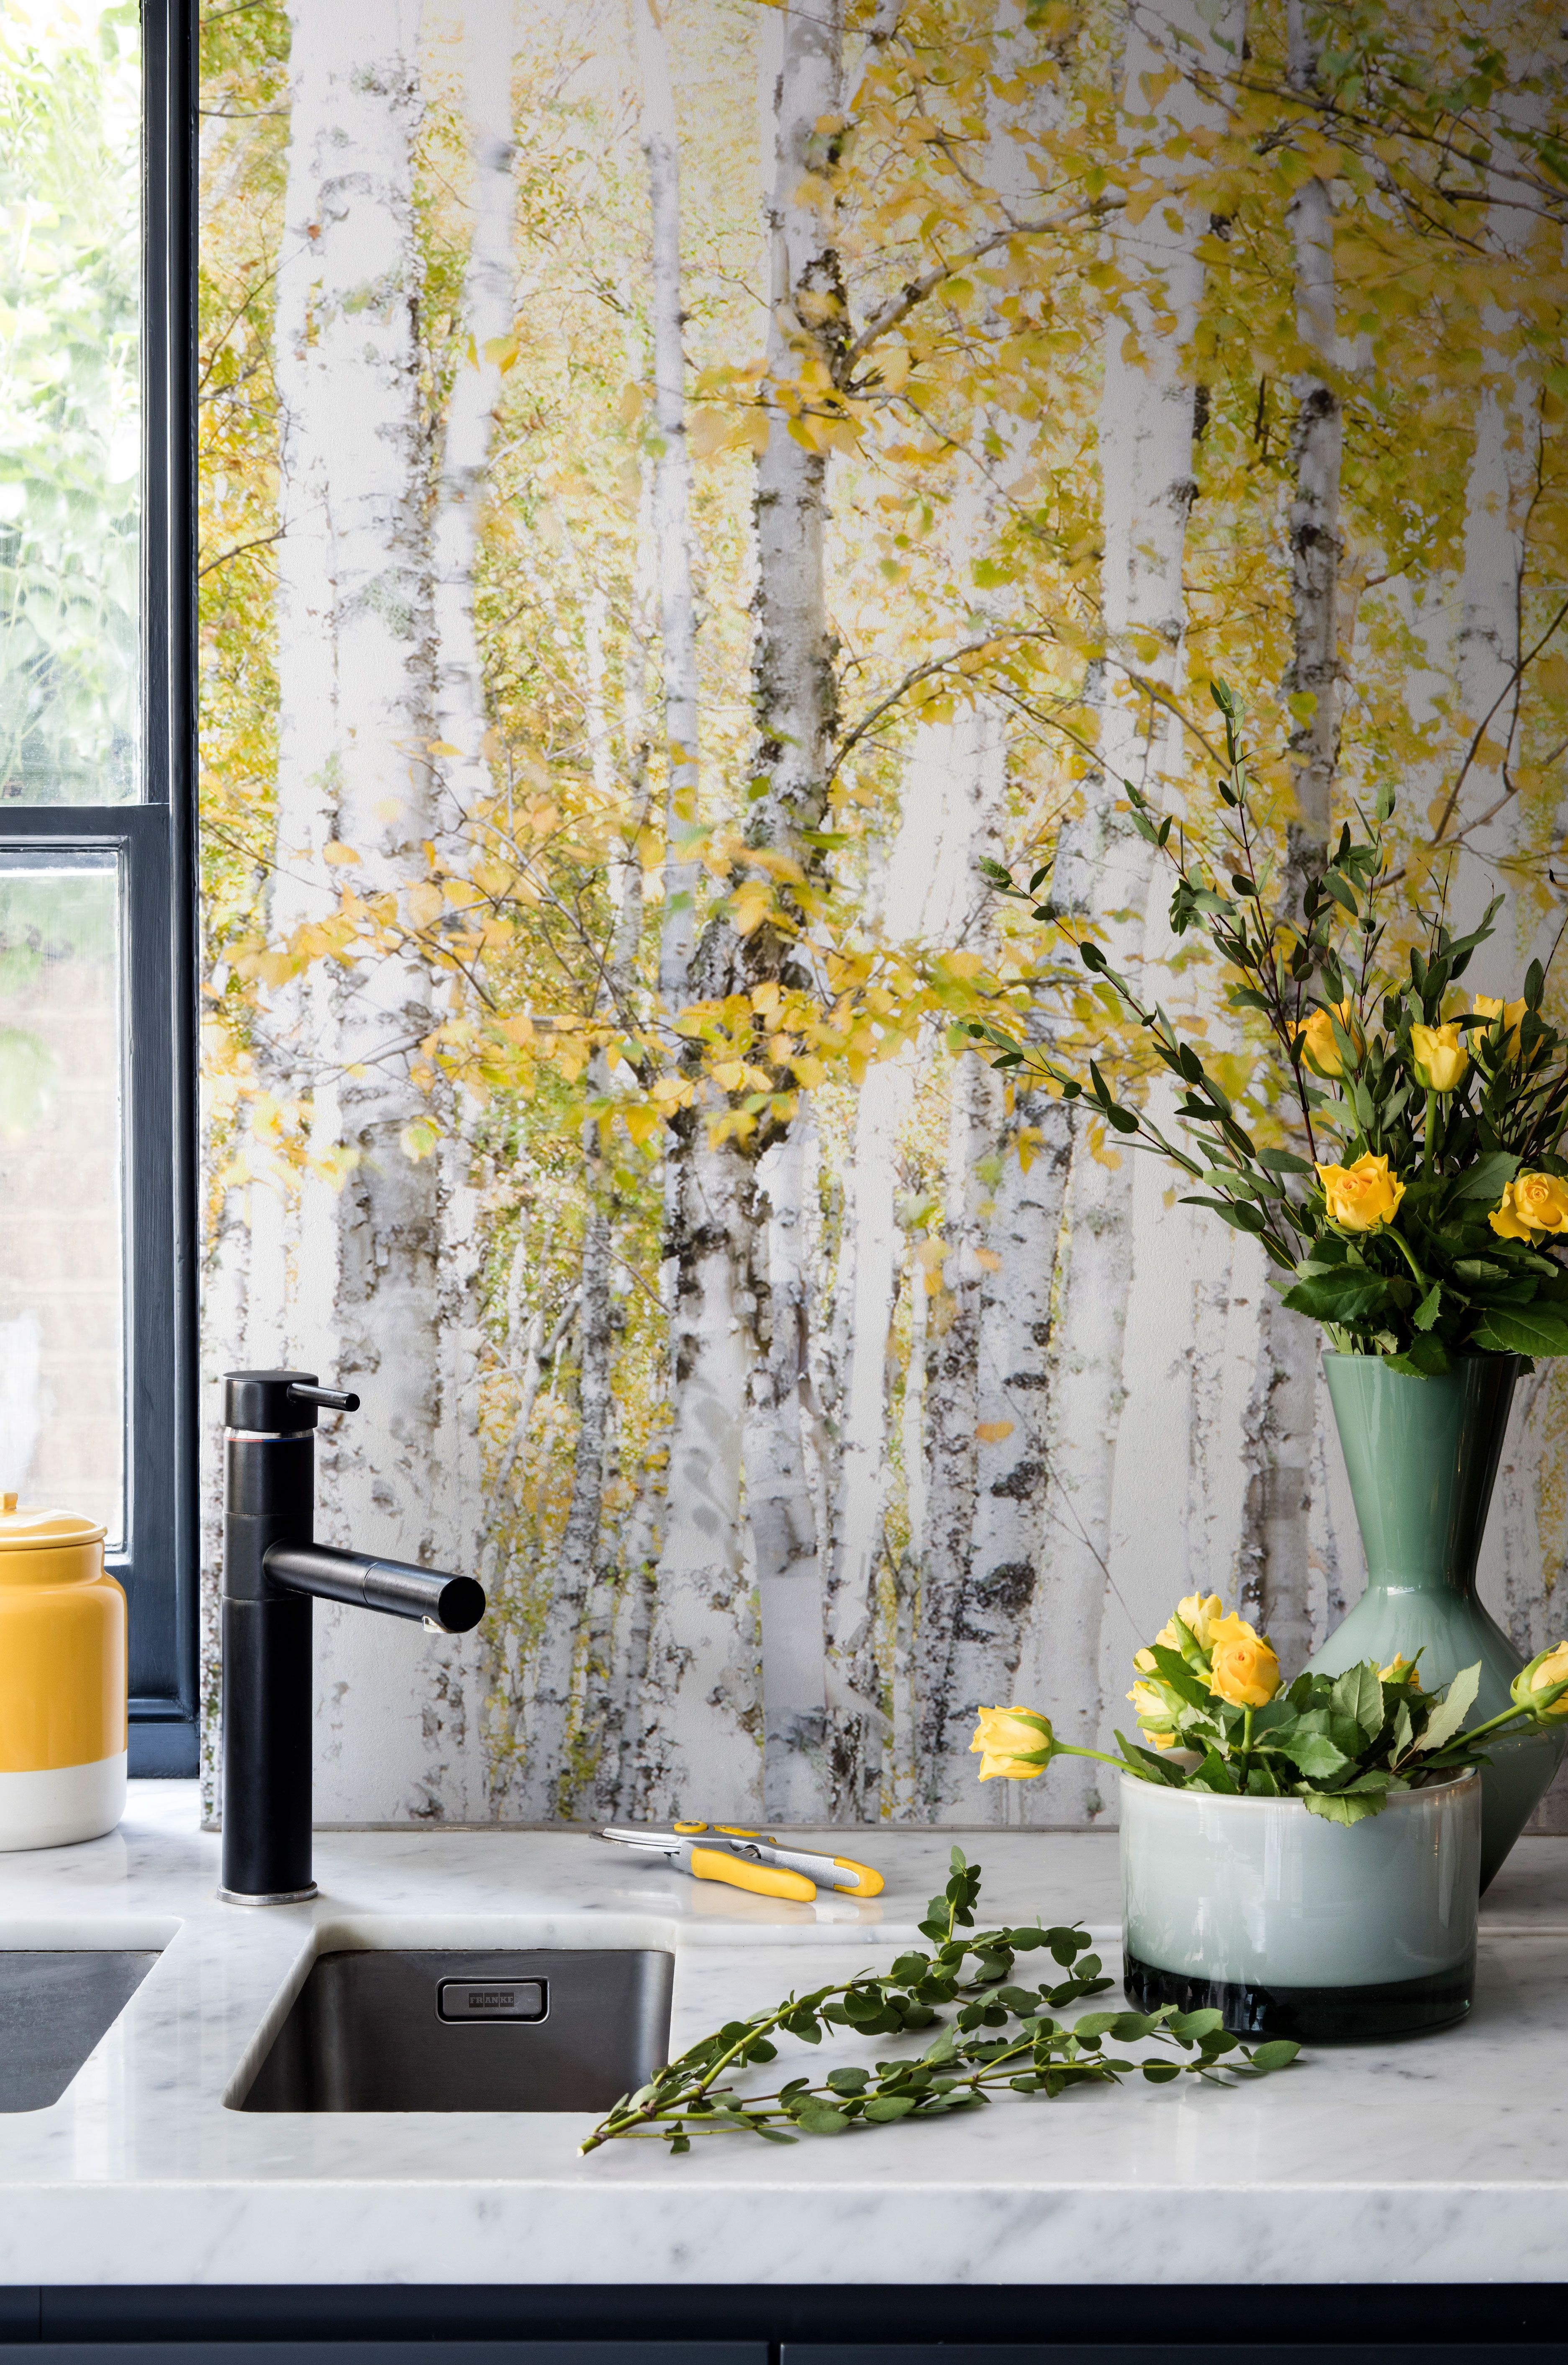 Bring warmth into your kitchen with this yellow birch tree